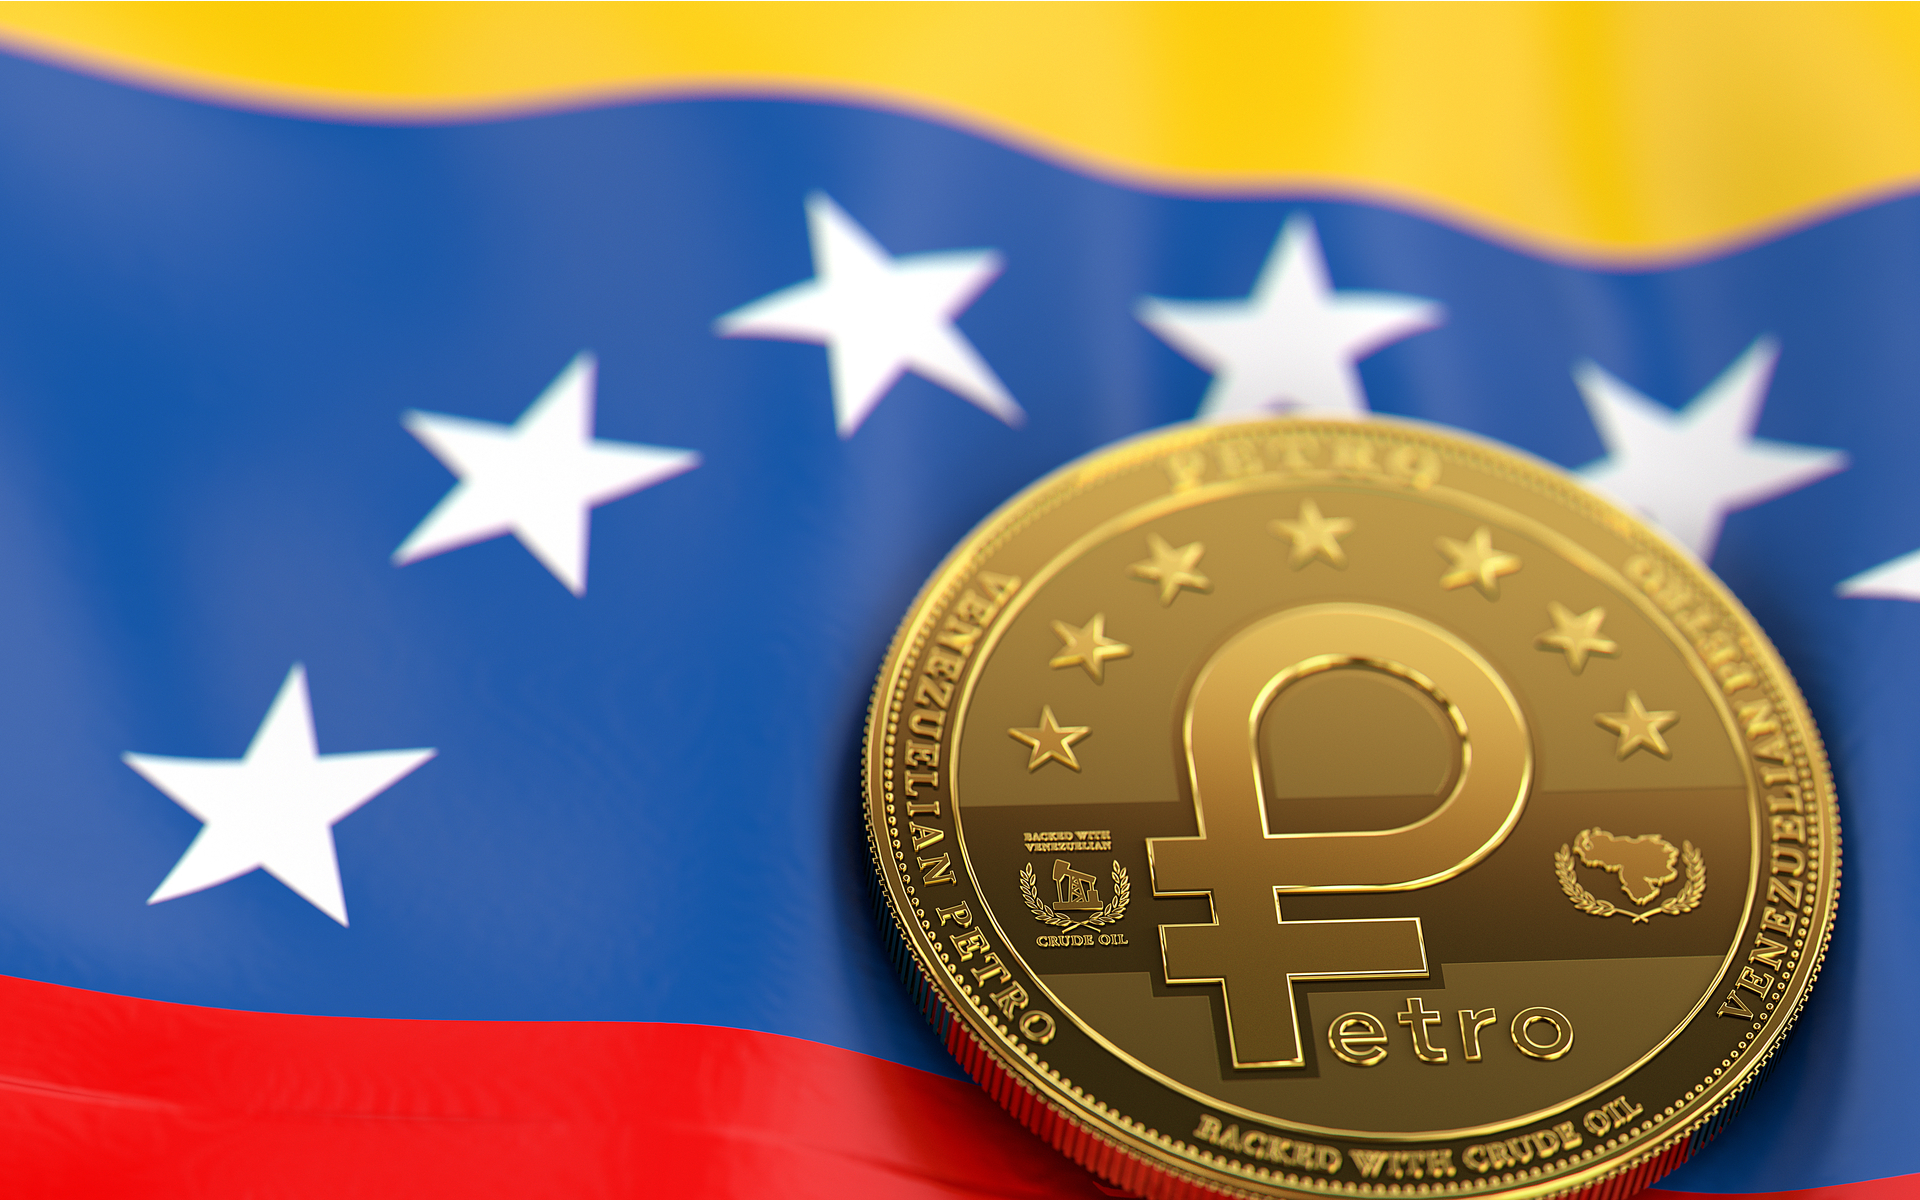 Crypto currency images venezuela cryptocurrency documentary definition